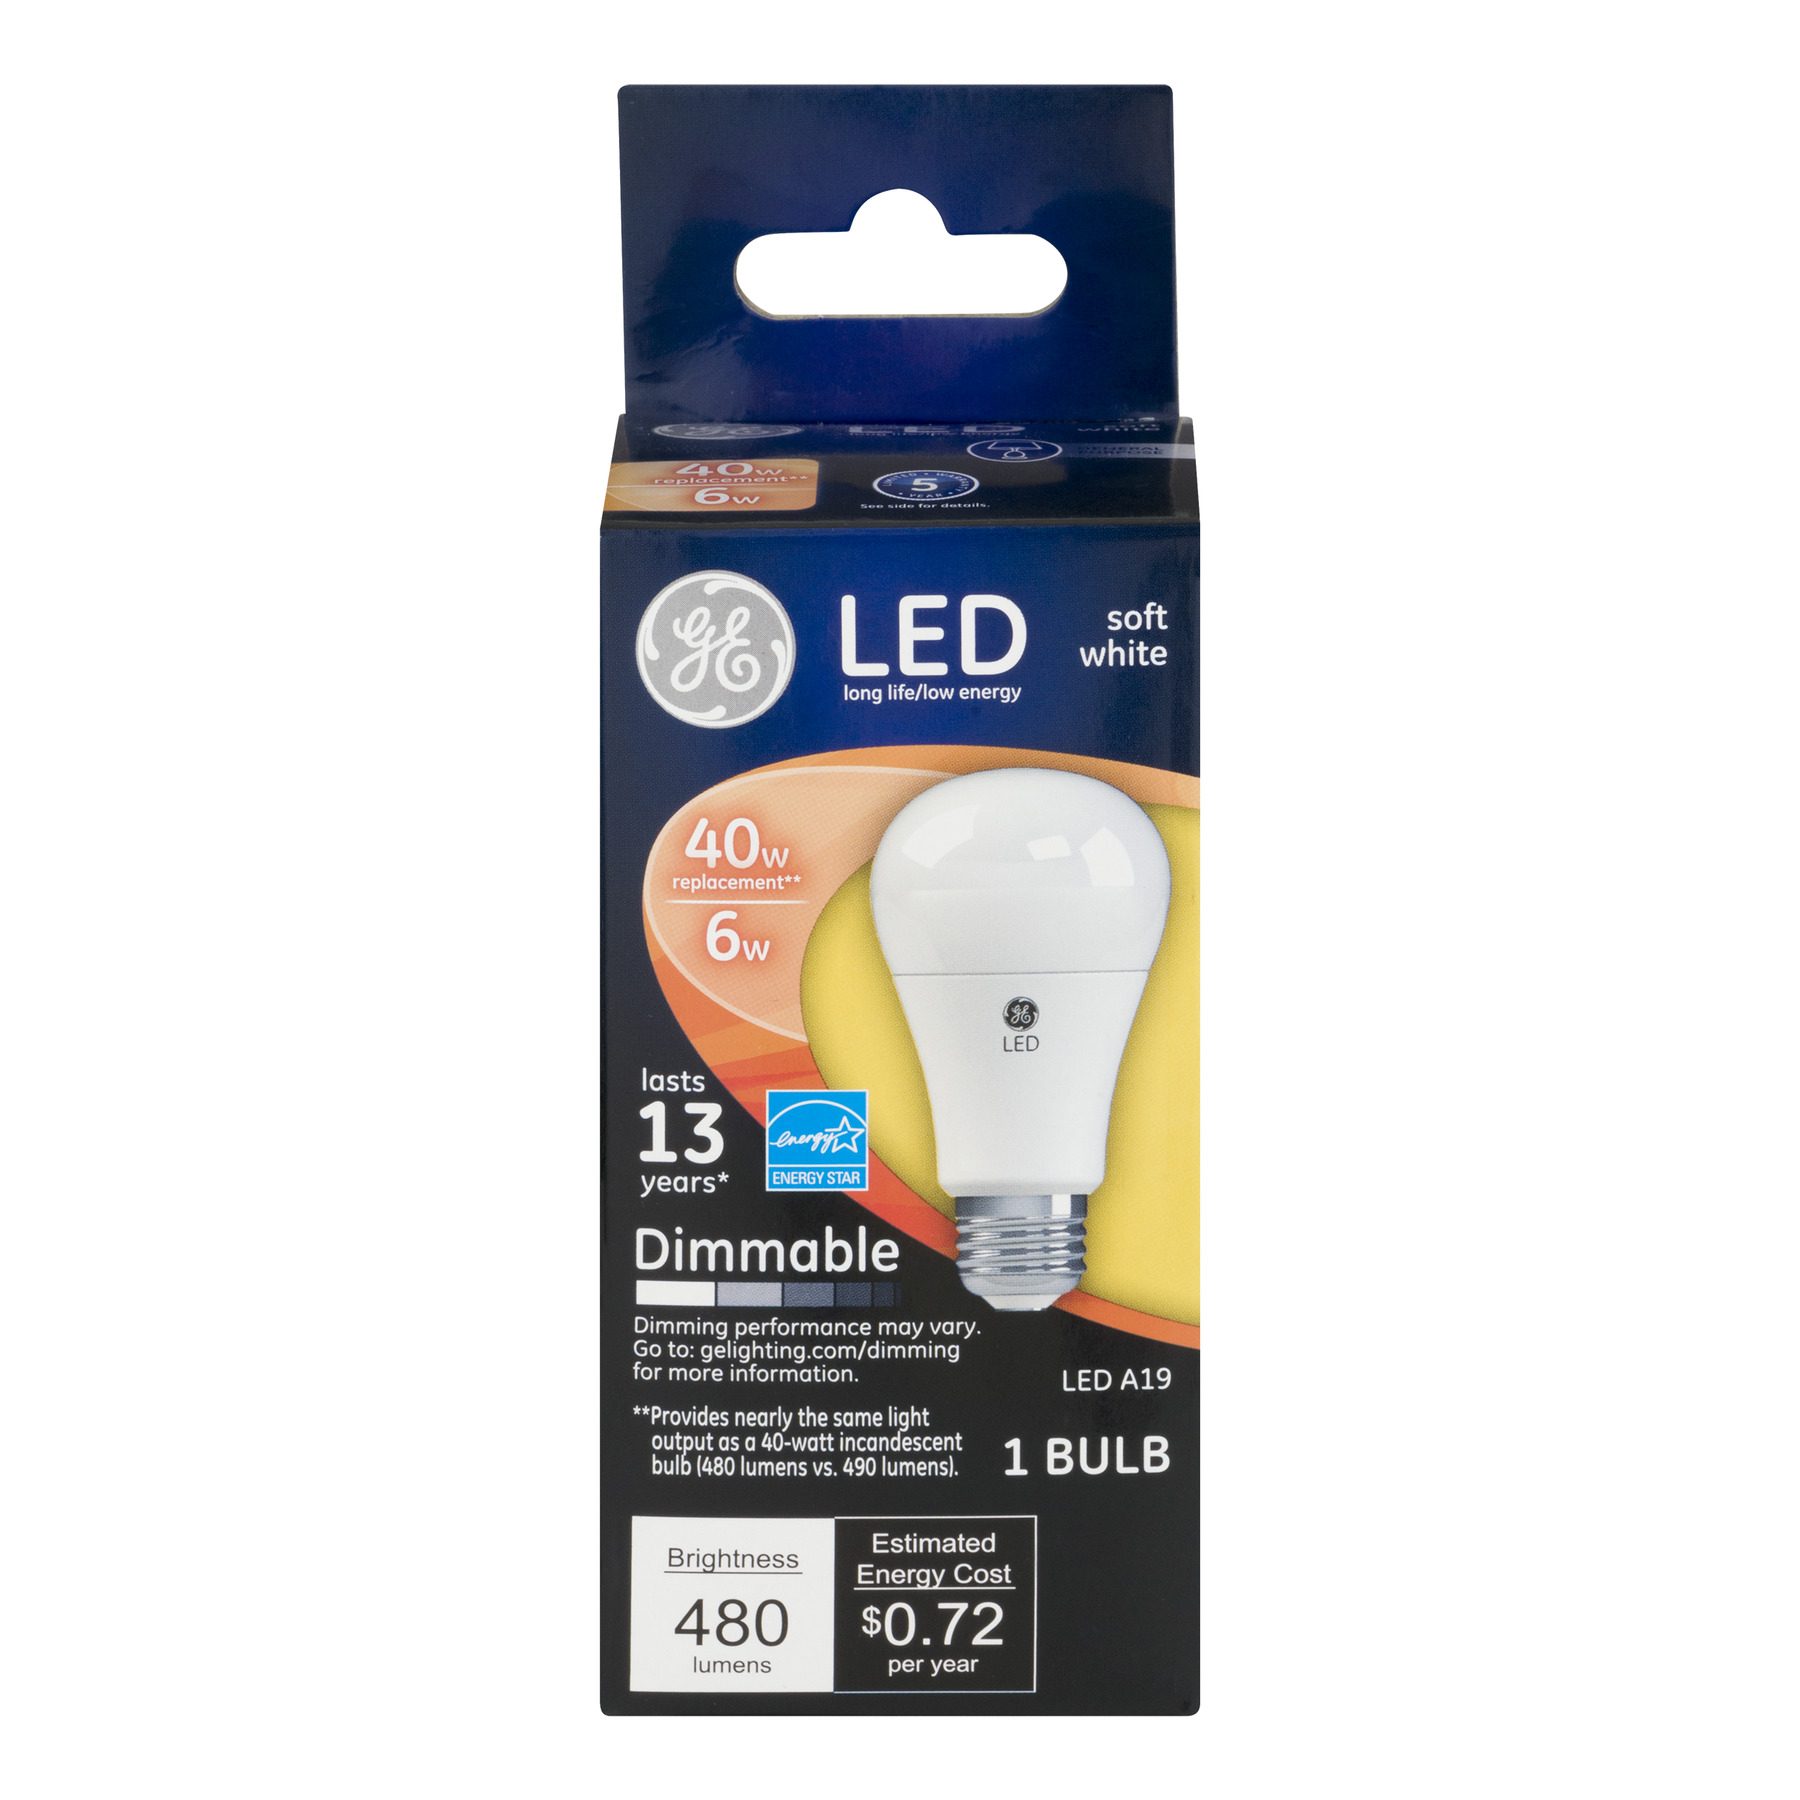 GE LED Soft White Dimmable Lightbulb 480 Lumens, 1.0 CT